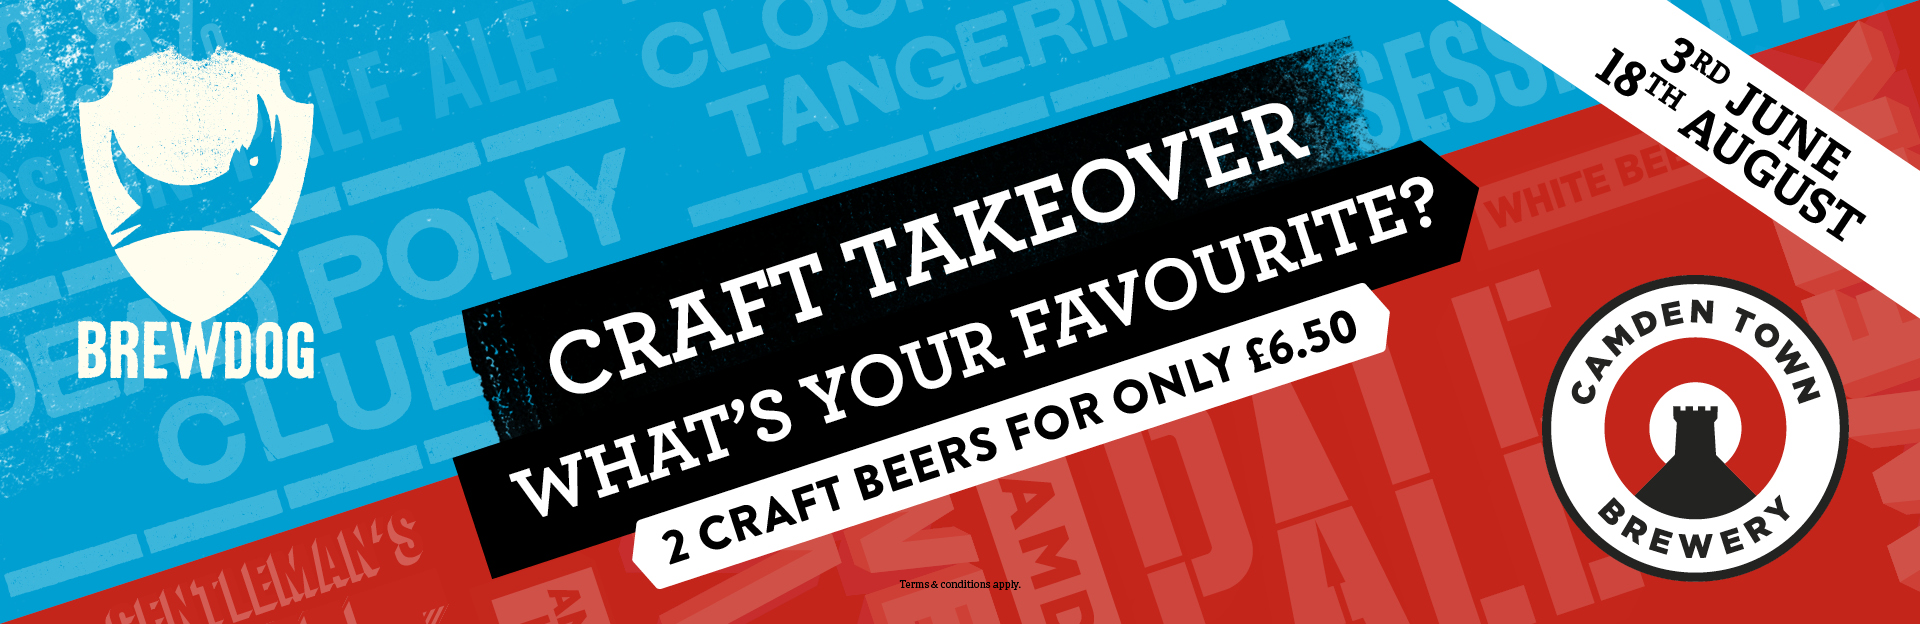 Craft Takeover at The Oak